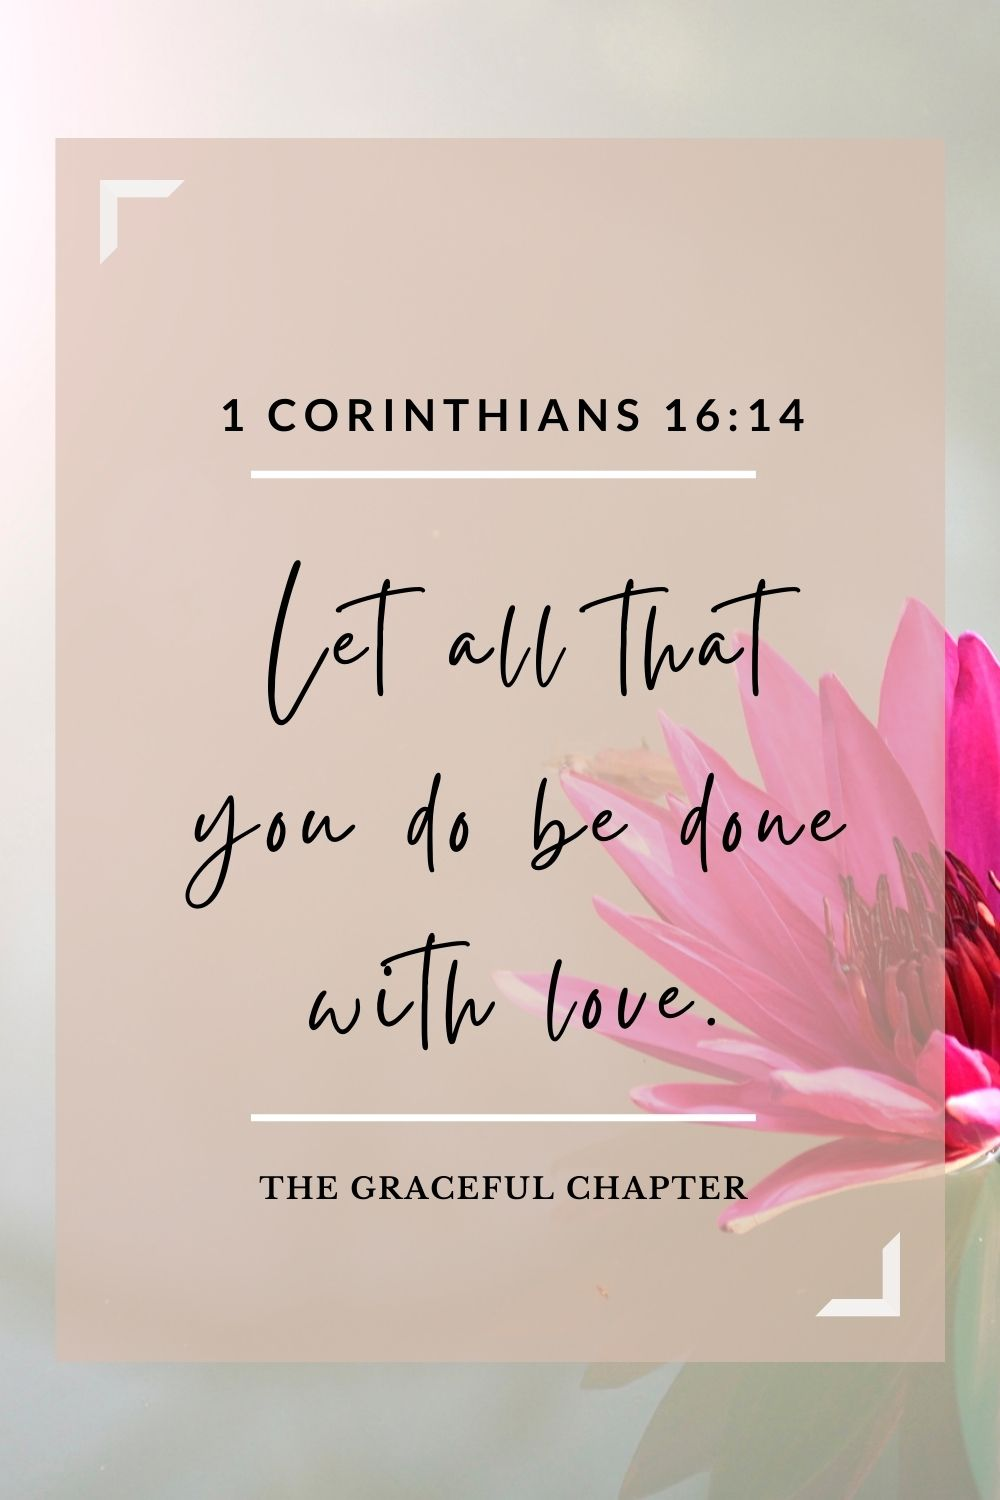 Let all that you do be done with love. 1 Corinthians 16:14